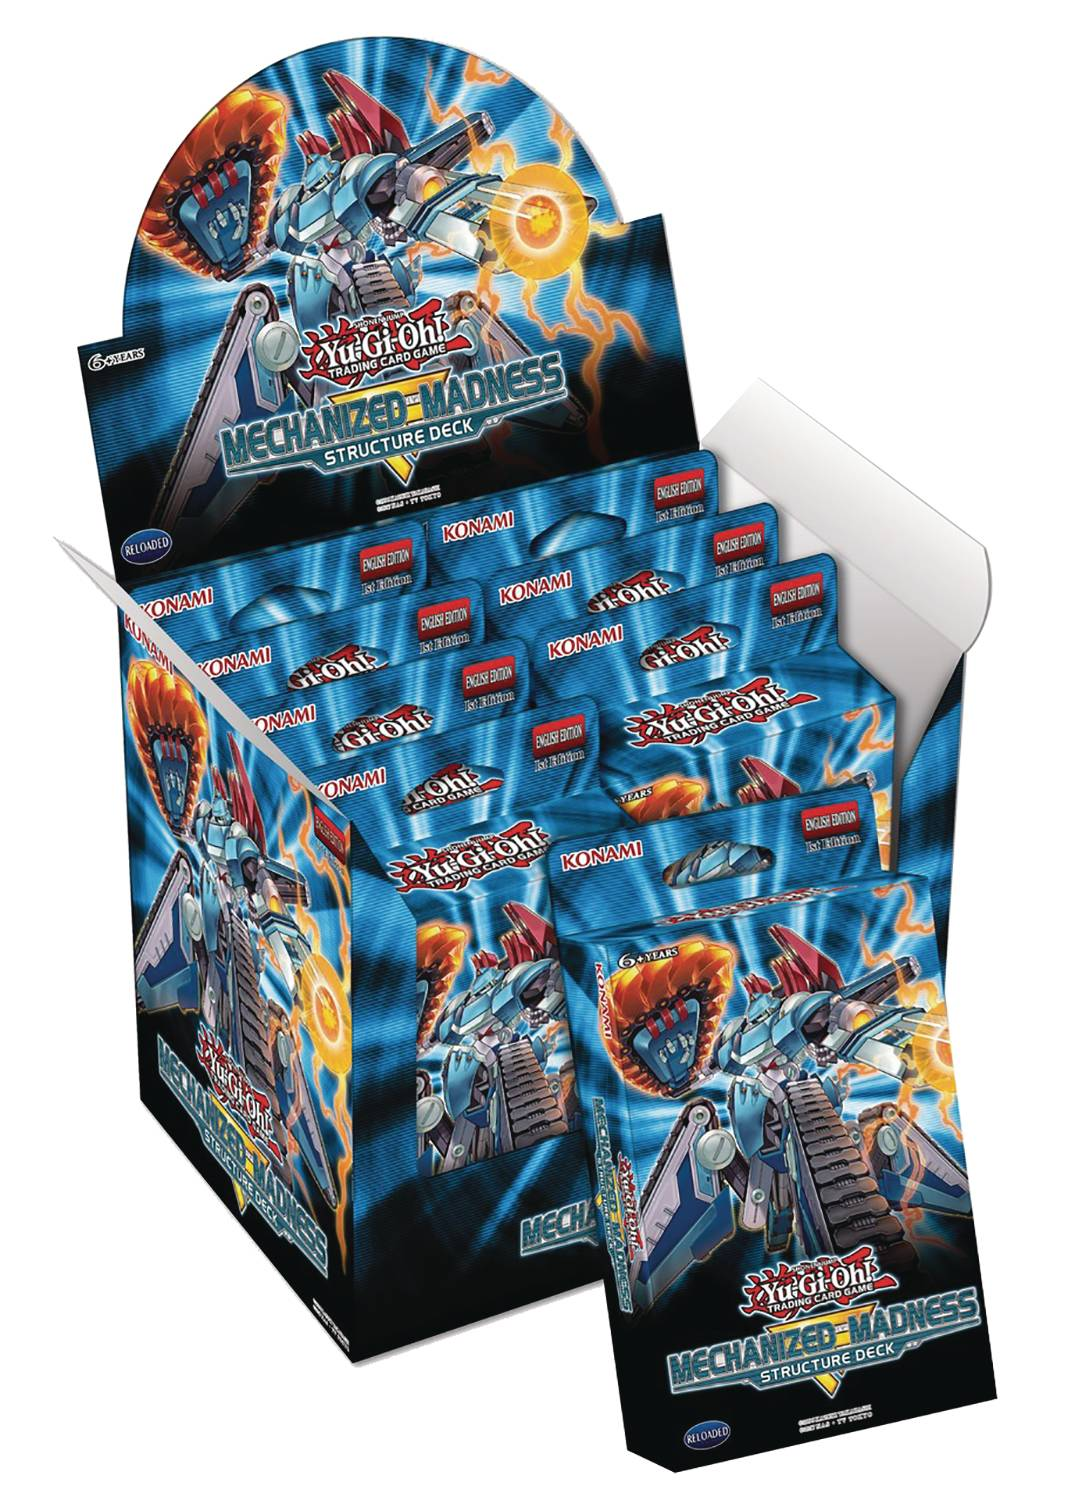 YU GI OH TCG MECHANIZED MADDNESS STRUCTURE DECK DIS (8CT) (C